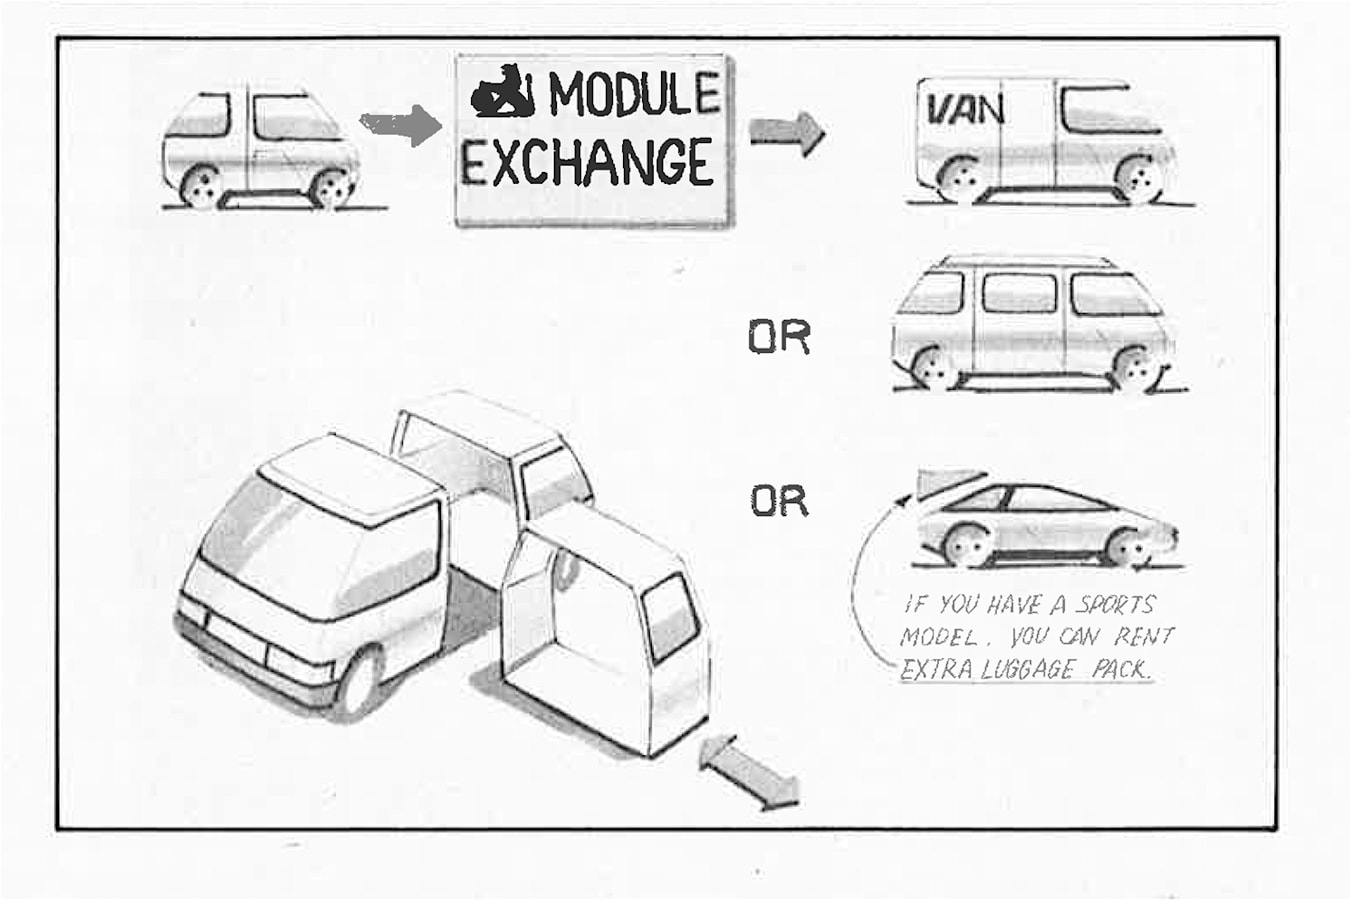 Car Design for the Next 25 Years